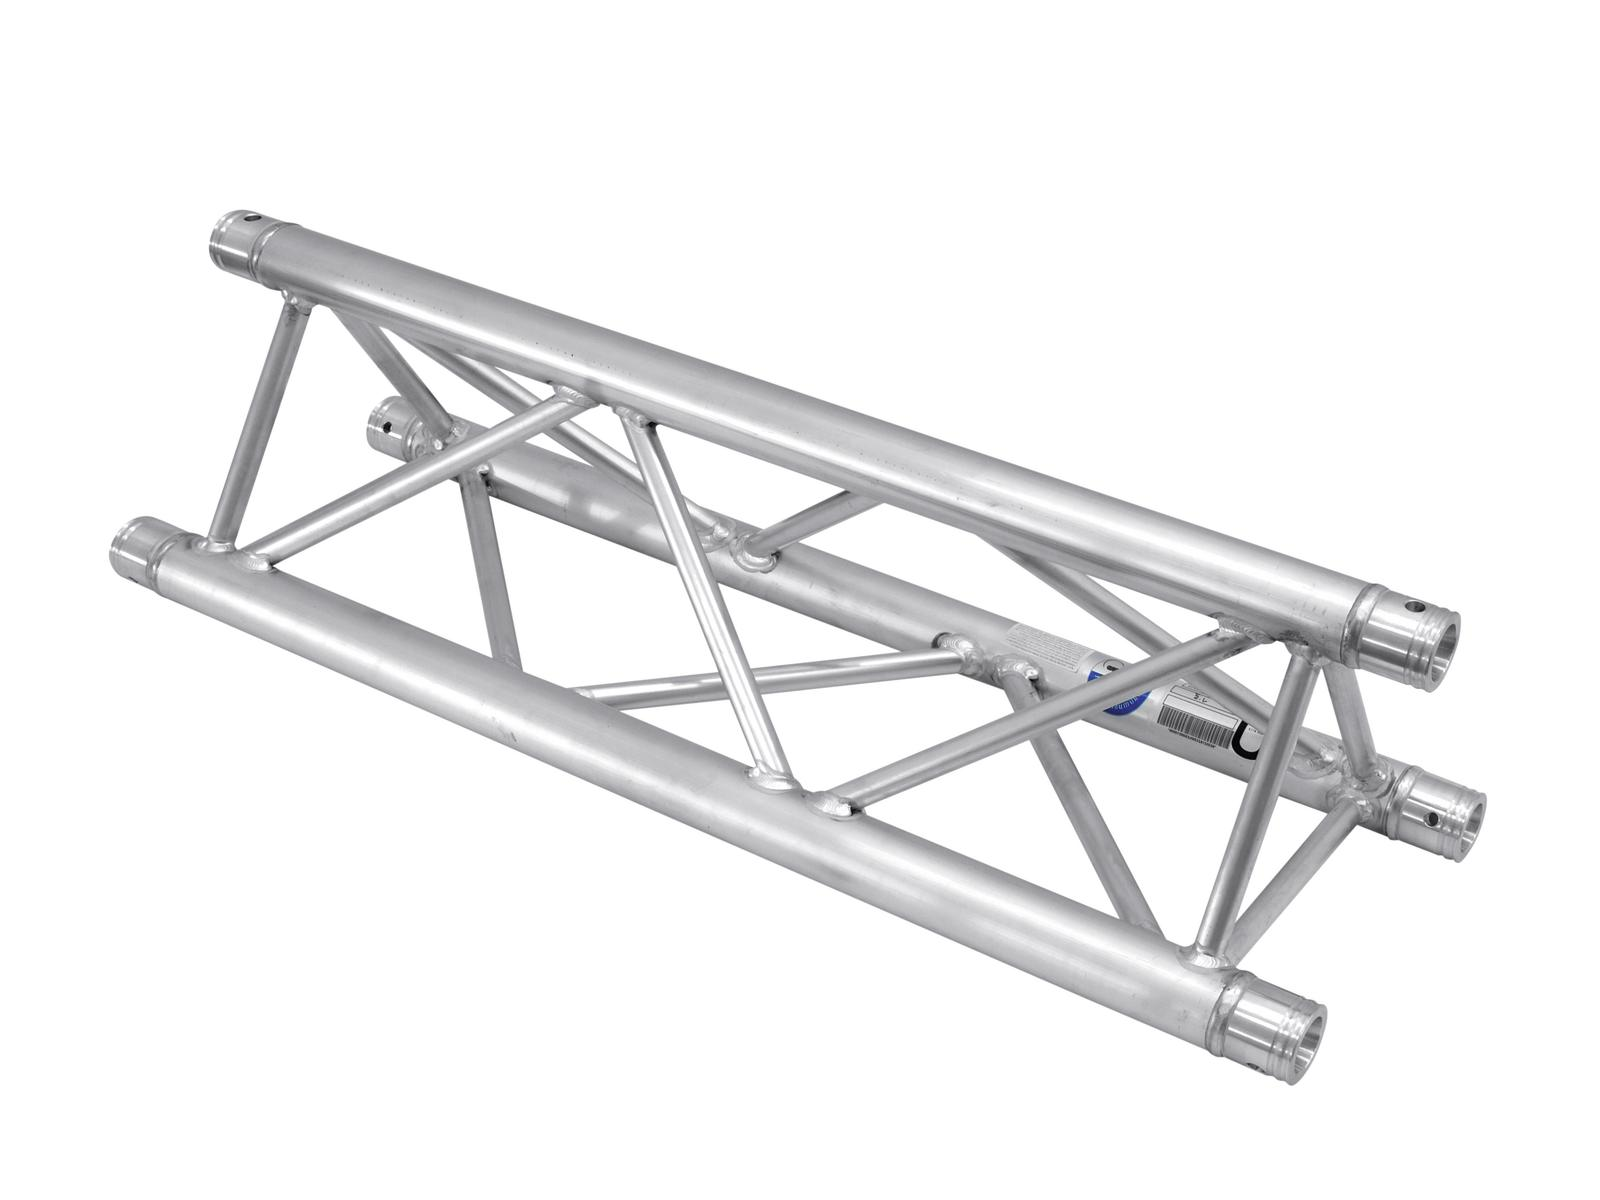 ALUTRUSS TRILOCK E-GL33 210 3 vie traverse